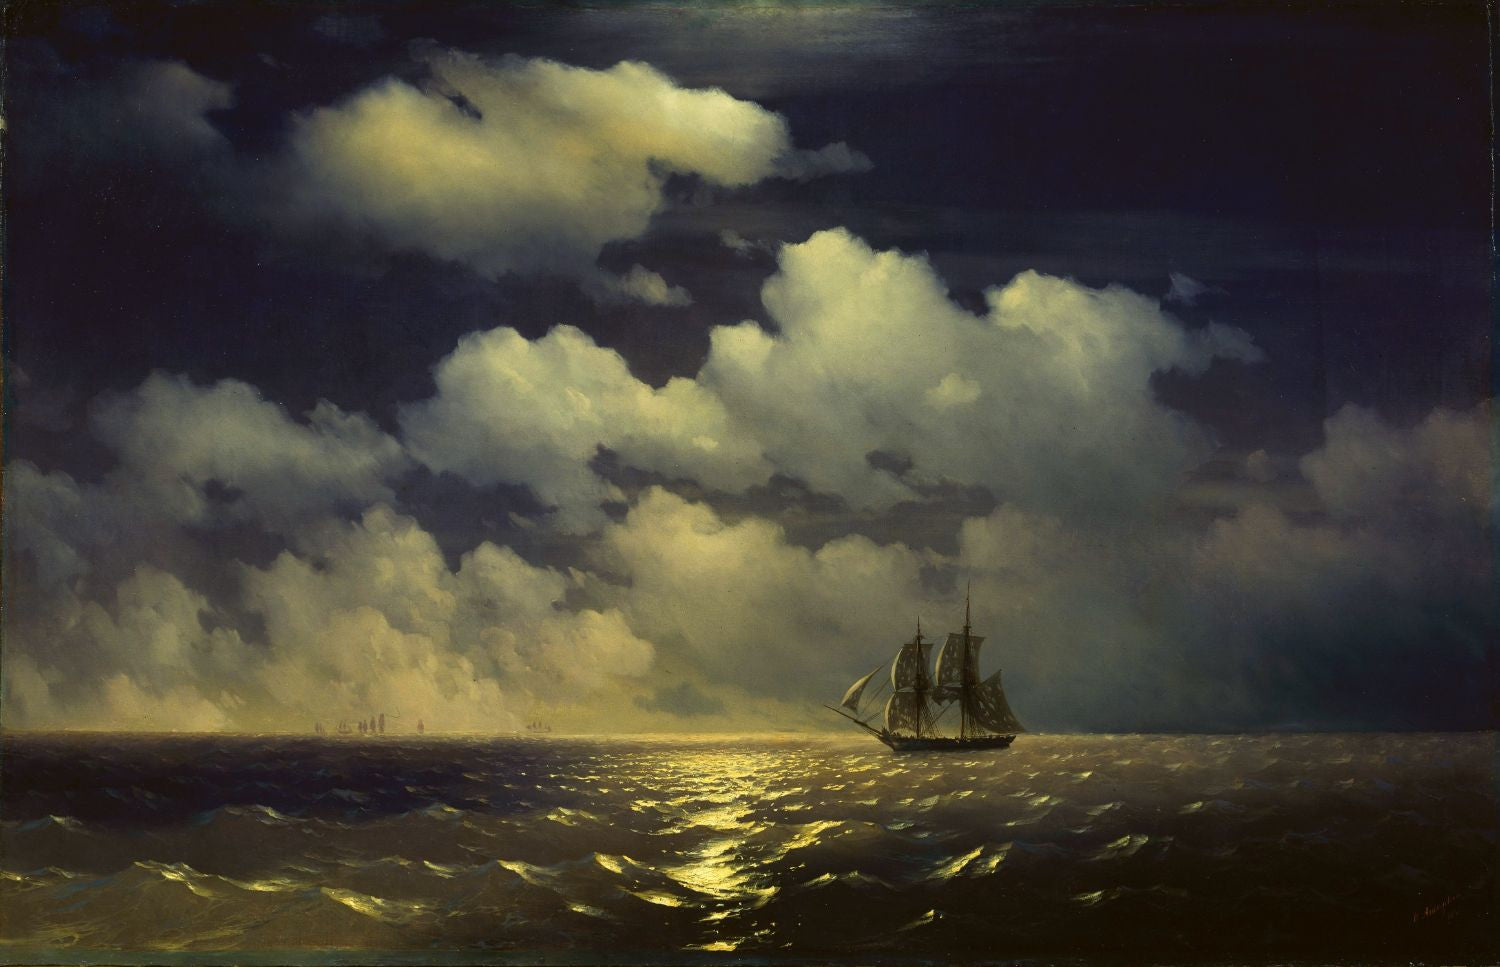 Ivan Aivazovsky | Buy Posters, Frames, Canvas, Digital Art & Large Size Prints Of The Famous Old Master's Artworks